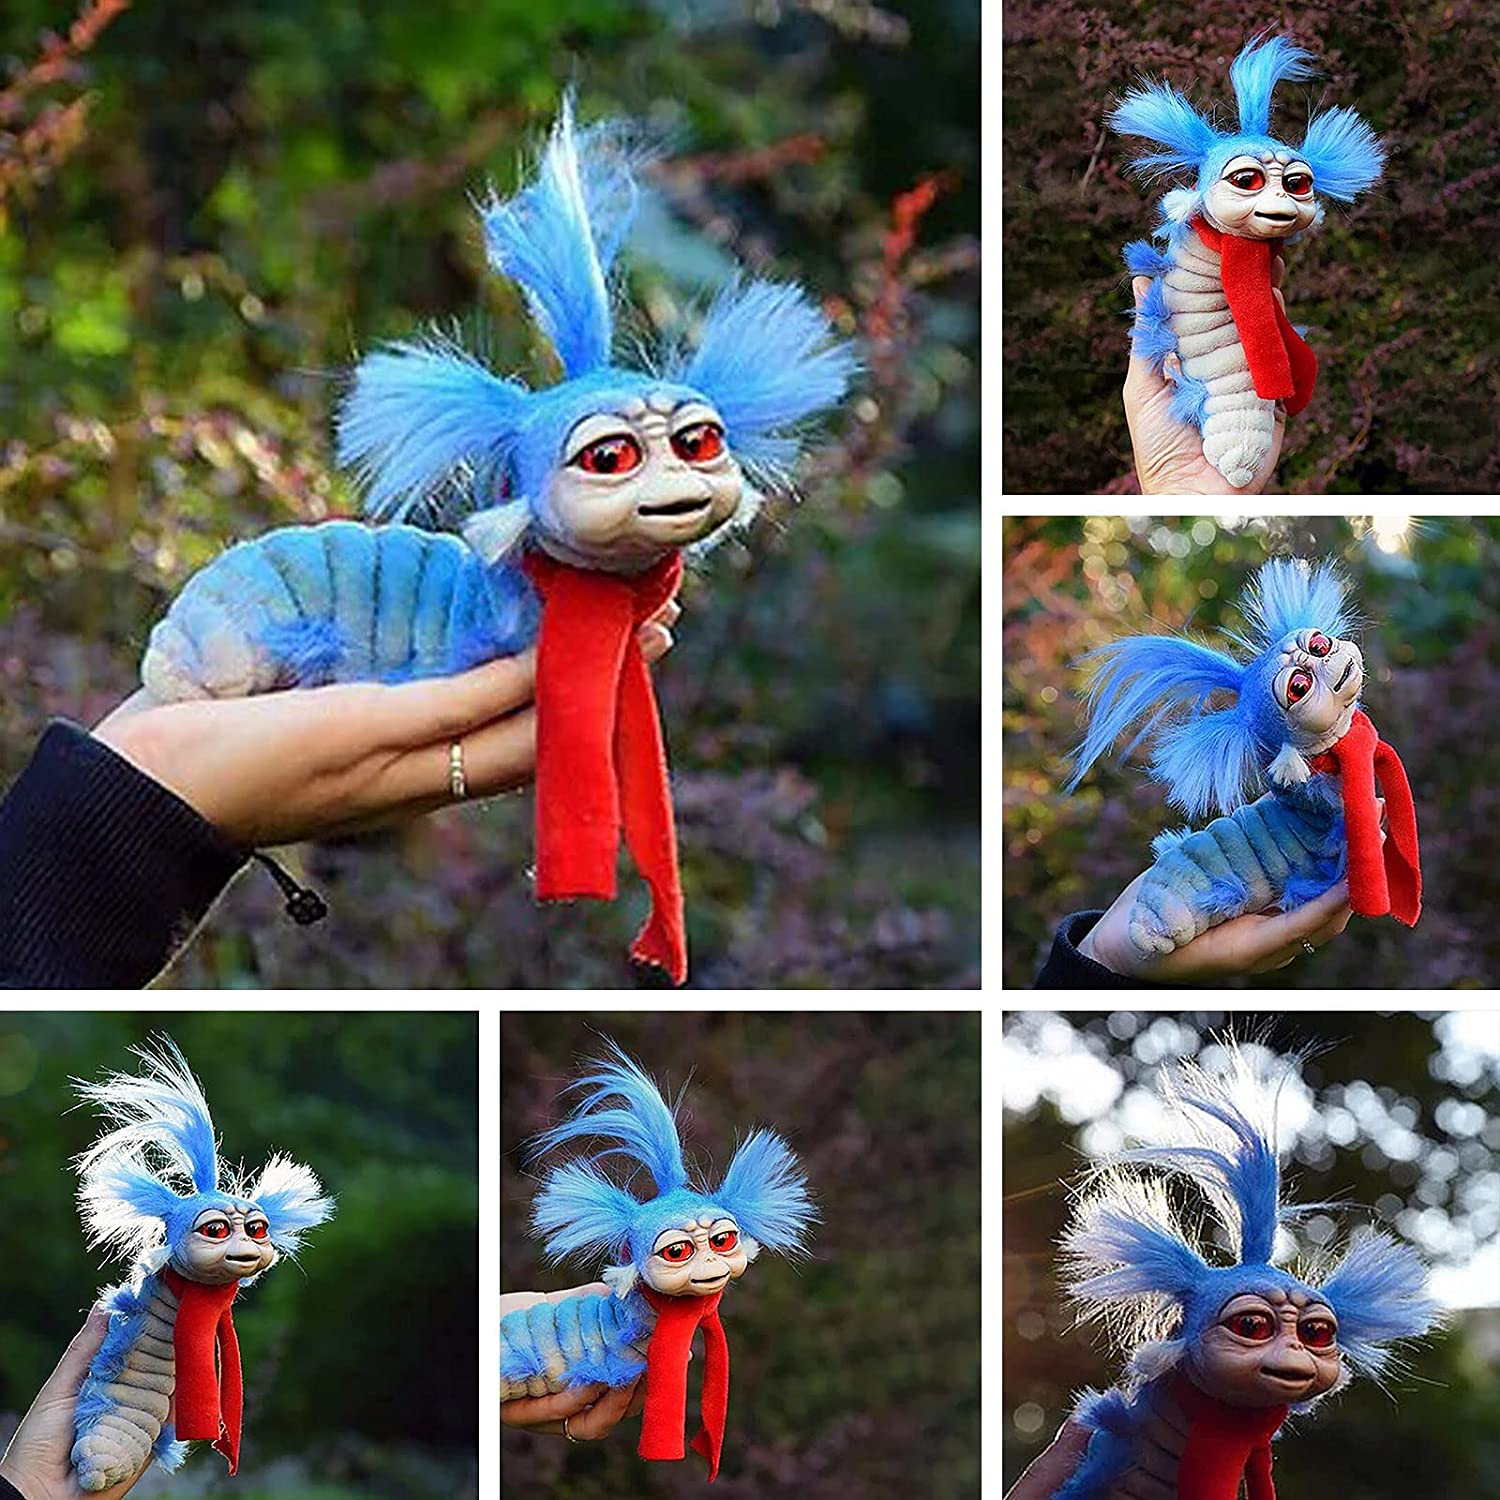 6 in Worm from Labyrinth, Worm from Labyrinth Plush Doll, Handmade Artist Labyrinth Firey Stuffed Toy, Funny Present for Fans of The Maze of The Devil, Garden Statue for Patio Yard Lawn Porch Crafts